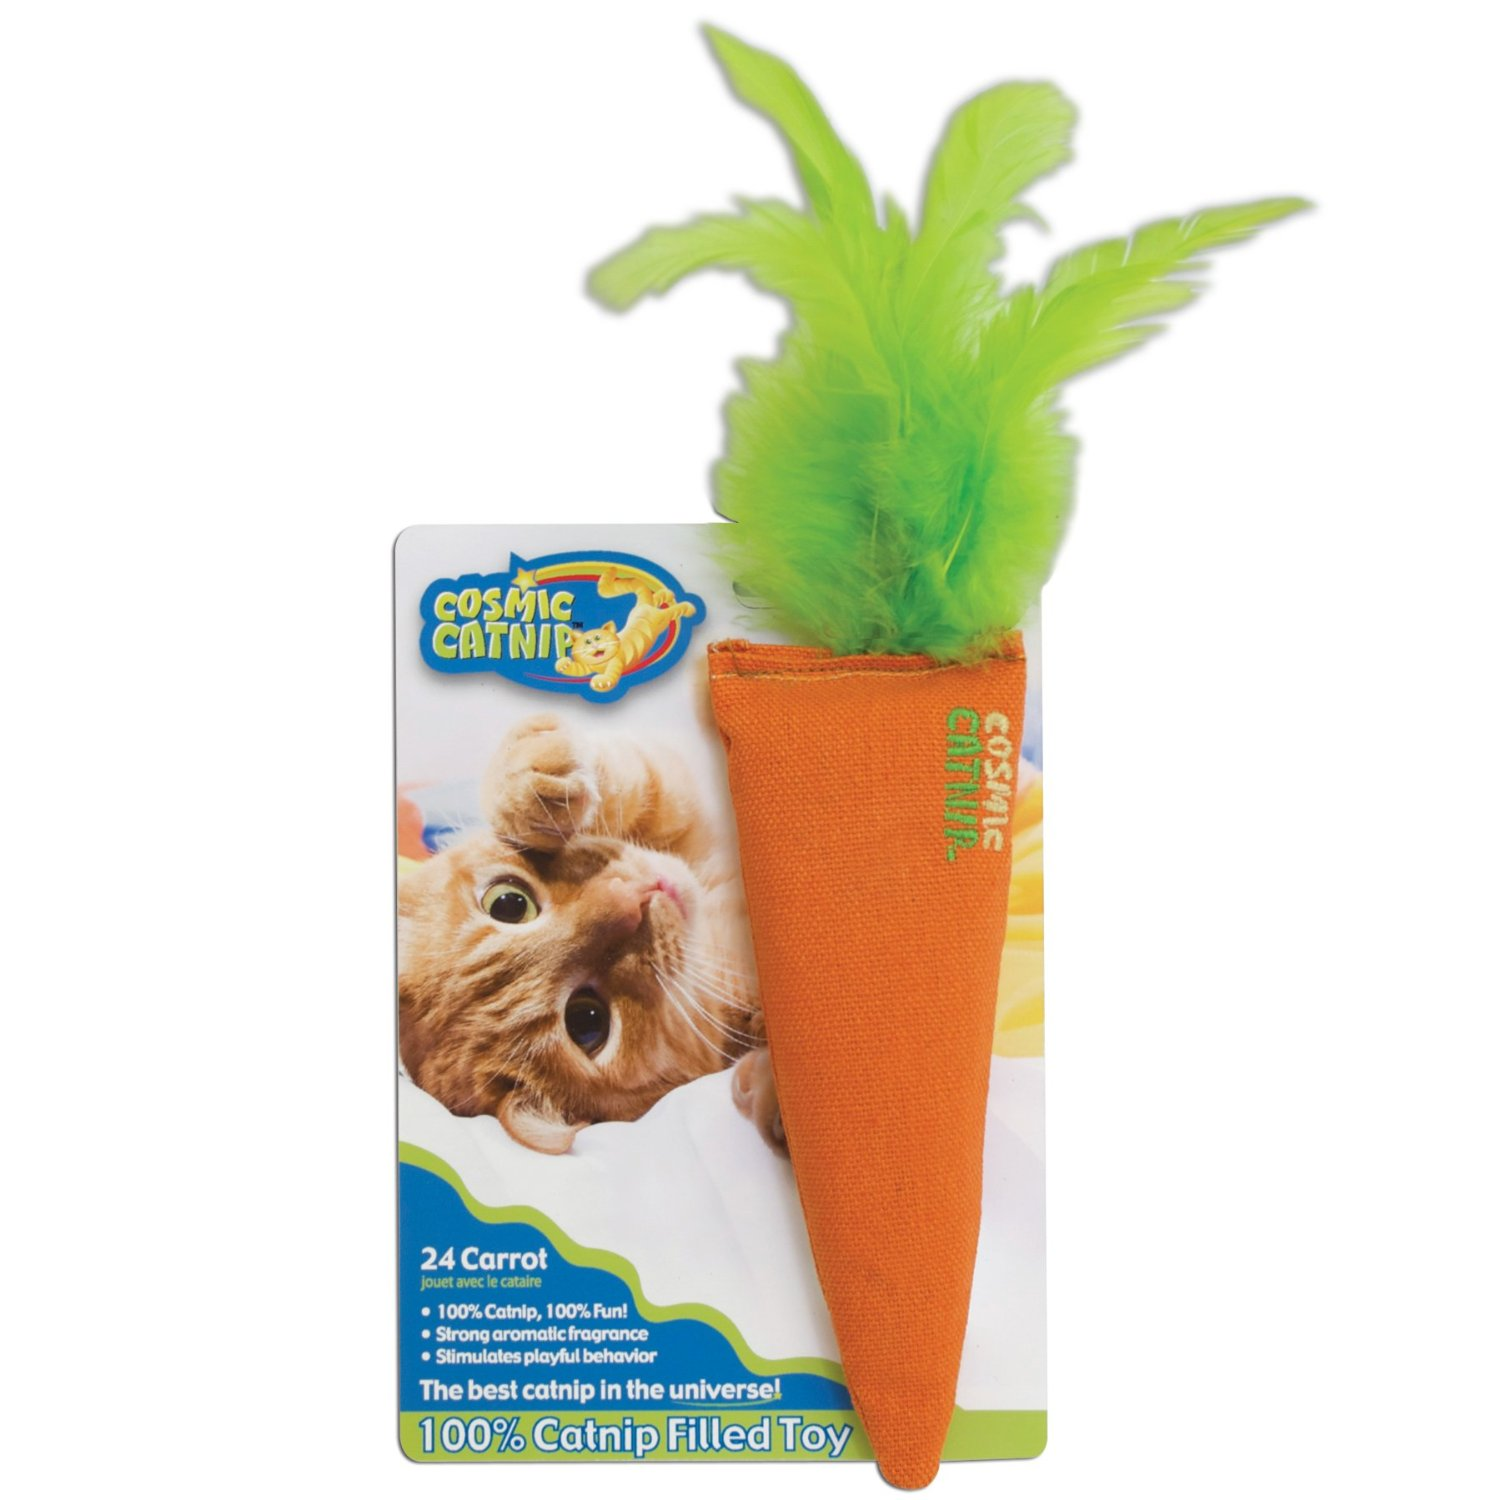 100-percent filled with catnip Encourages playful behavior Filled with North American grown catnip Strong aromatic fragrance Carrot shaped toy